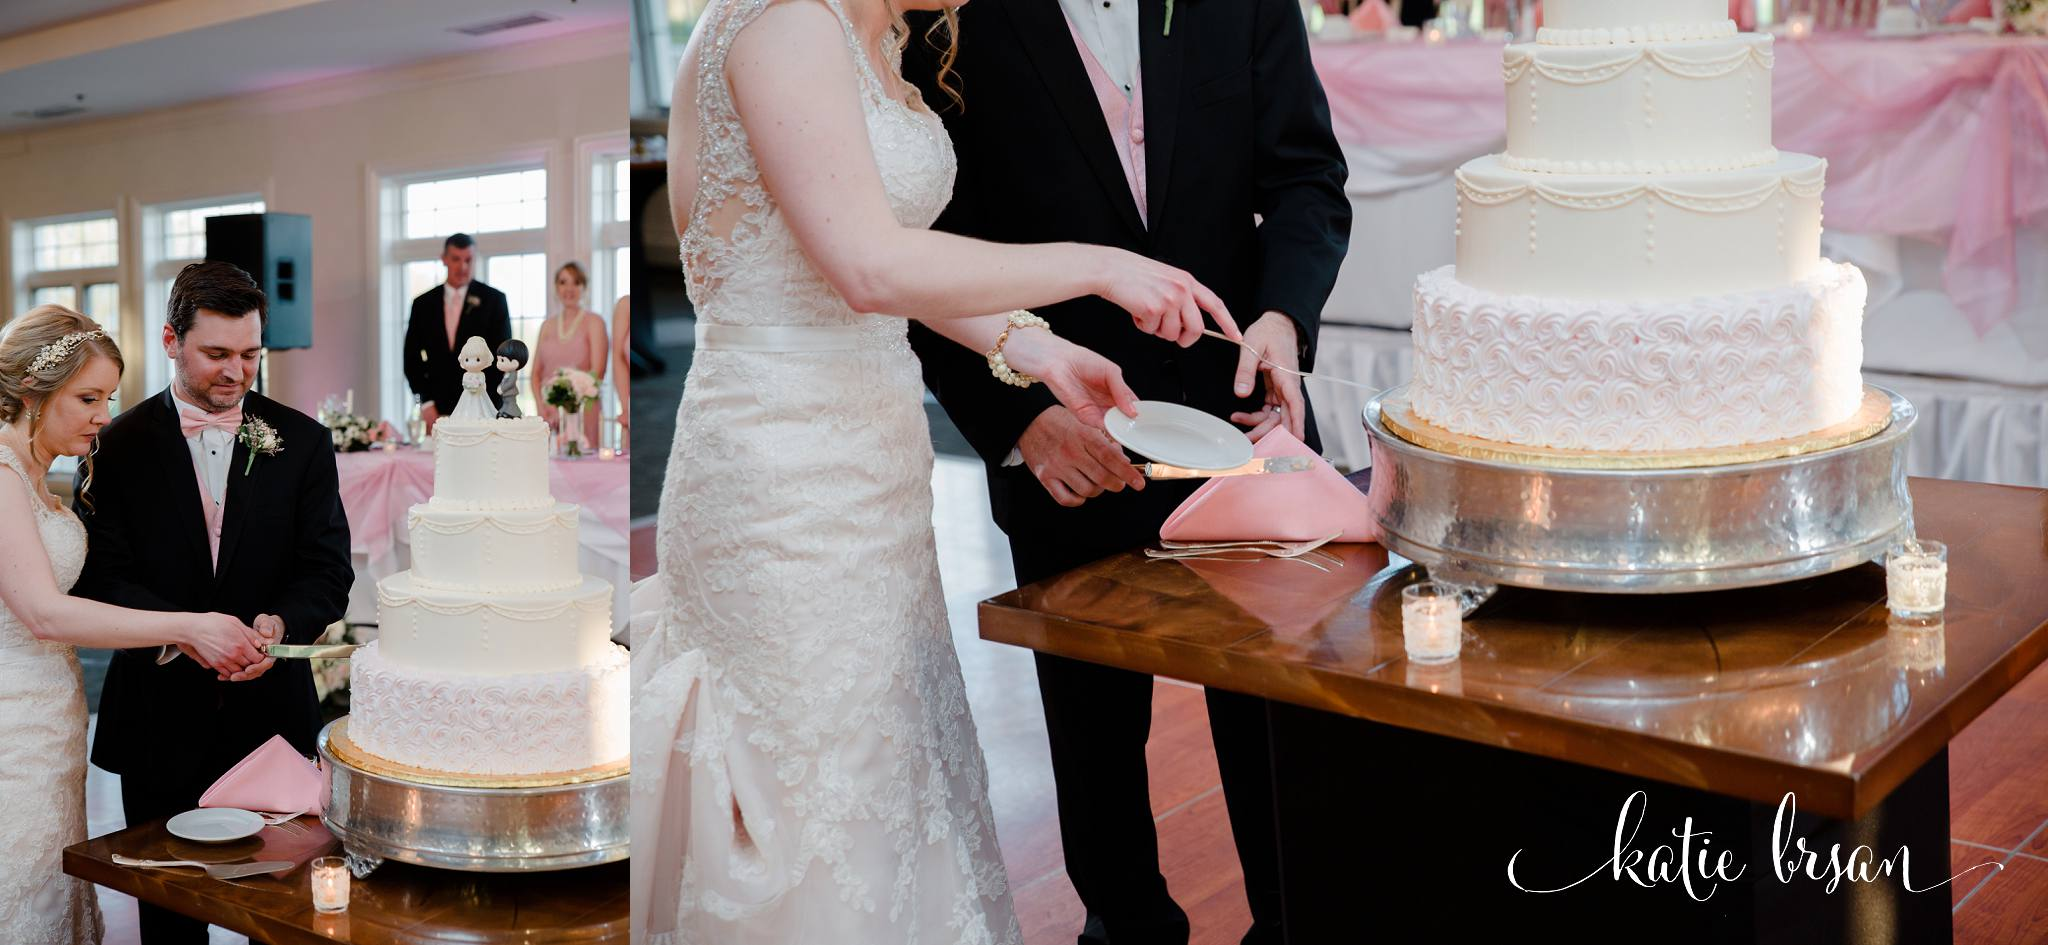 Mokena_Lemont_Wedding_Ruffled_Feathers_Wedding_1411.jpg